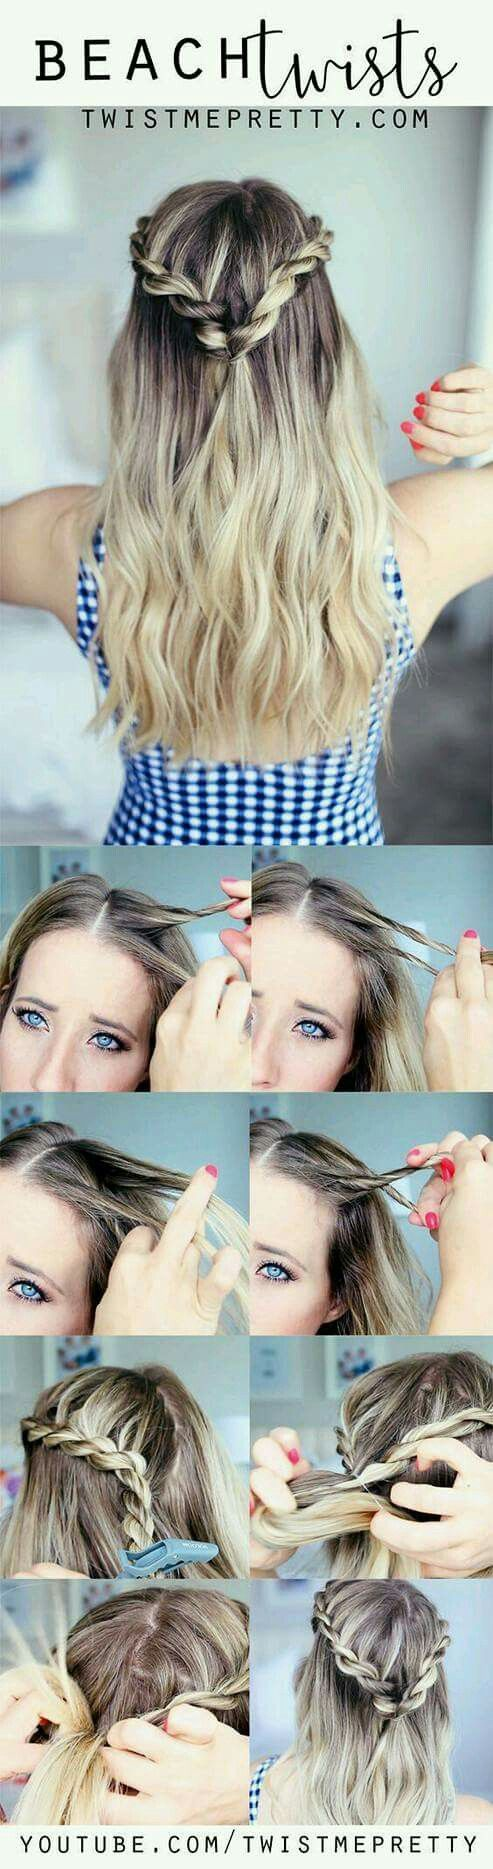 Beach Twists!